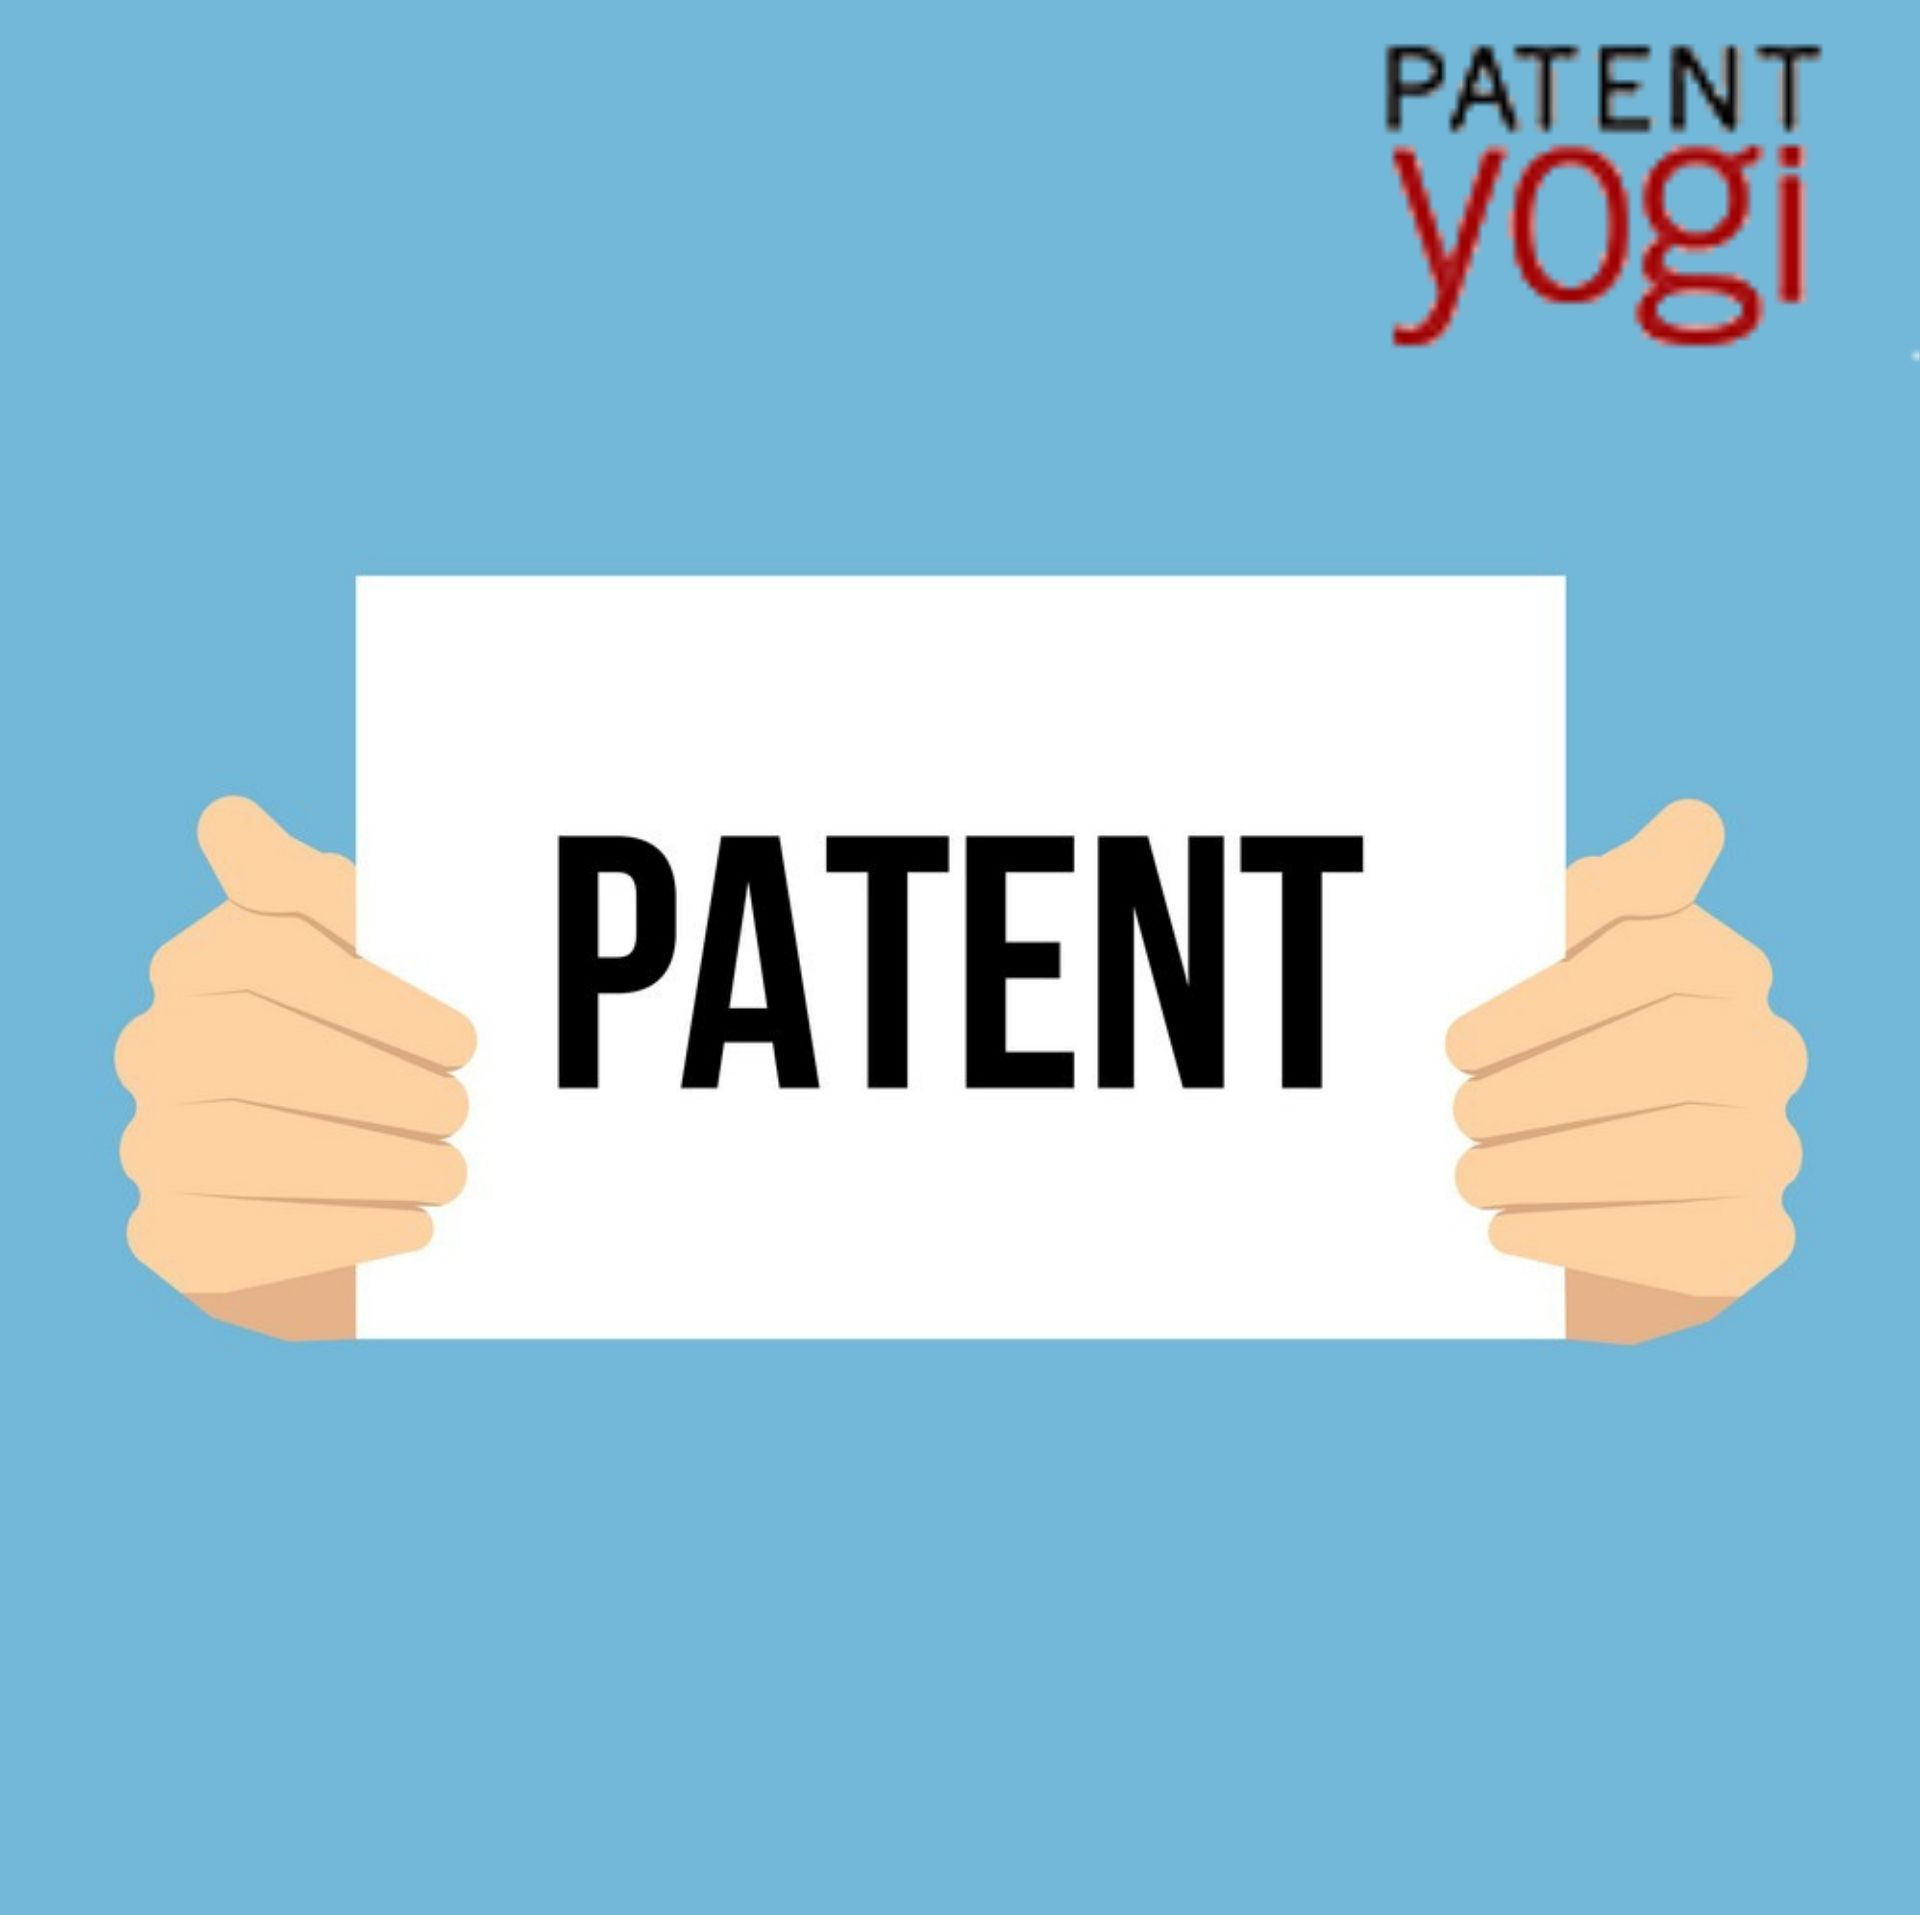 Utility Patent Services Usa Medical Services Provisional Patent Application How To Apply